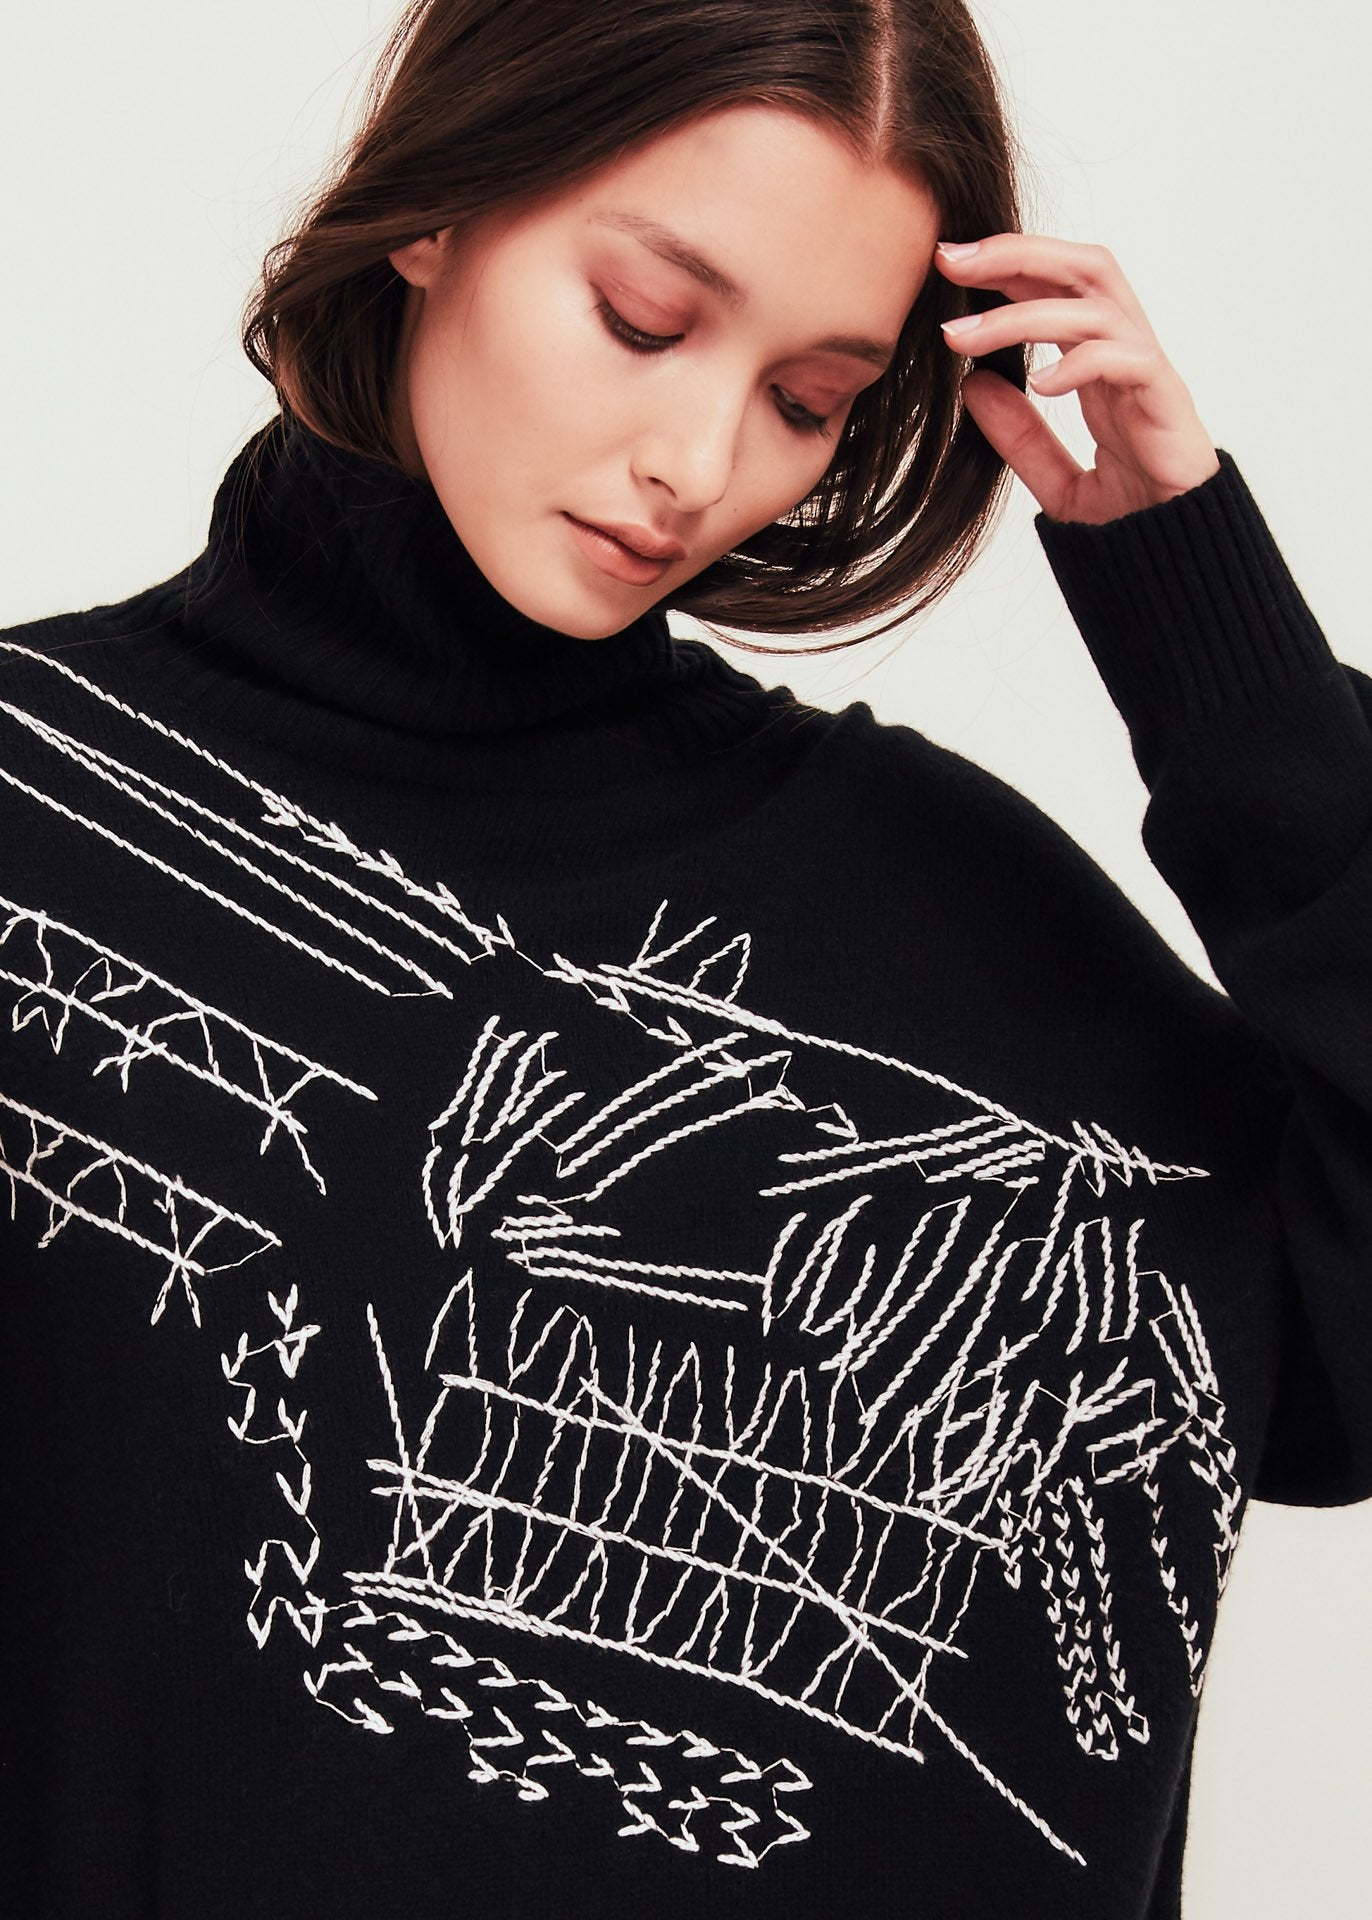 Black Wool Turtleneck Sweater With Embroidery - Delilah